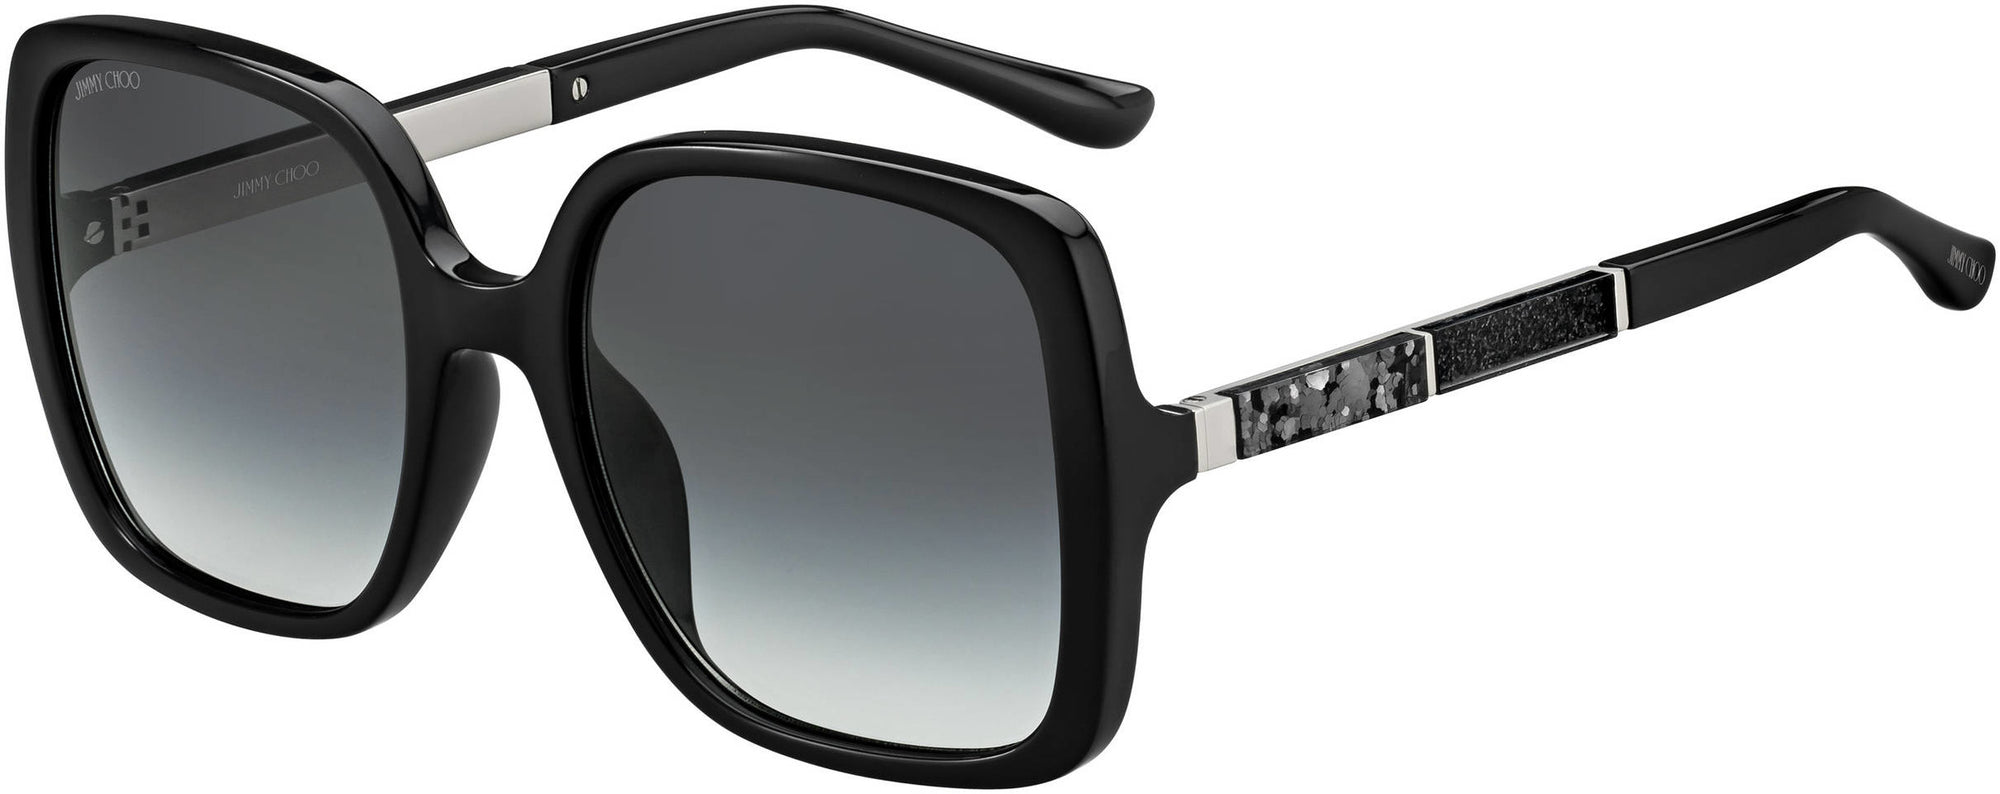 Givenchy CHARI/S Square Sunglasses 0807-0807  Black (9O Dark Gray Gradient)